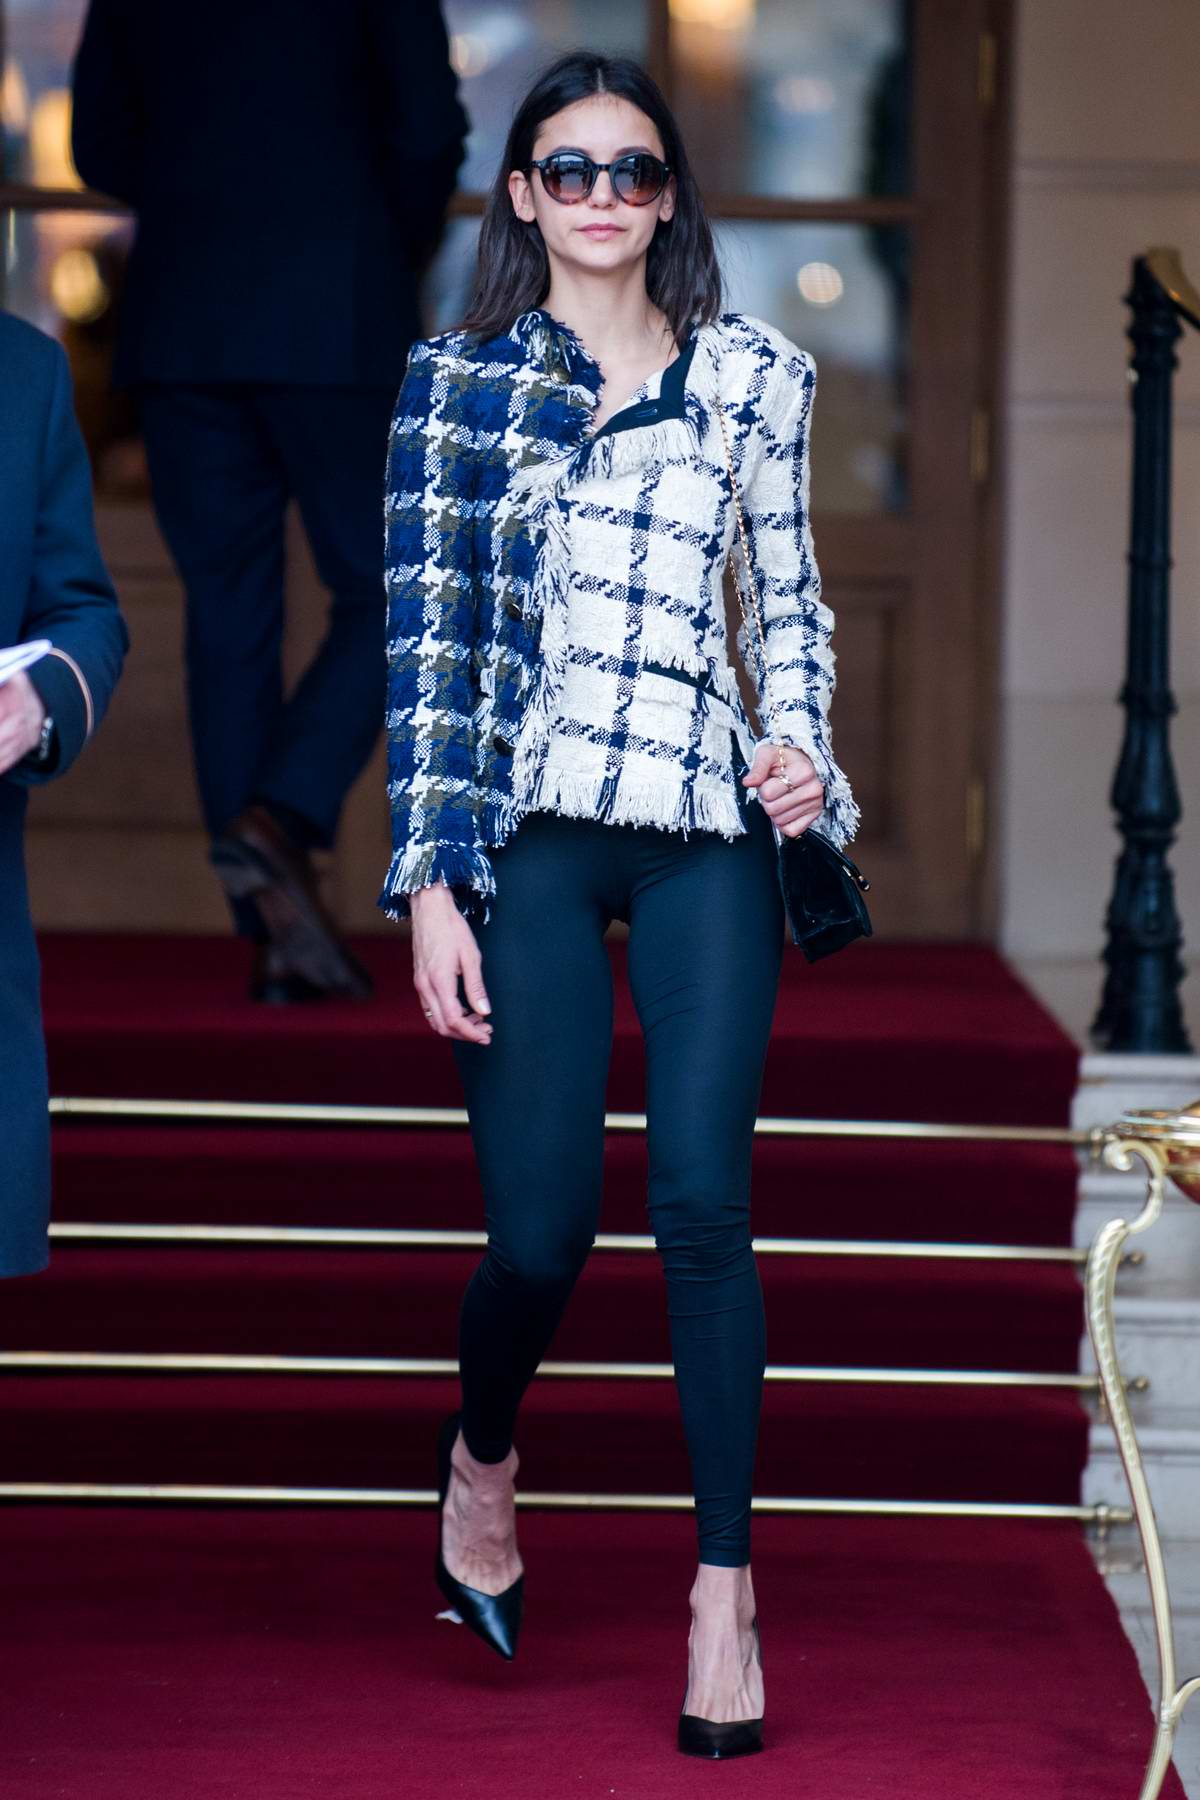 Nina Dobrev dons a stylish dark blue and white checkered jacket and black leggings as she leaves the Ritz Hotel in Paris, France